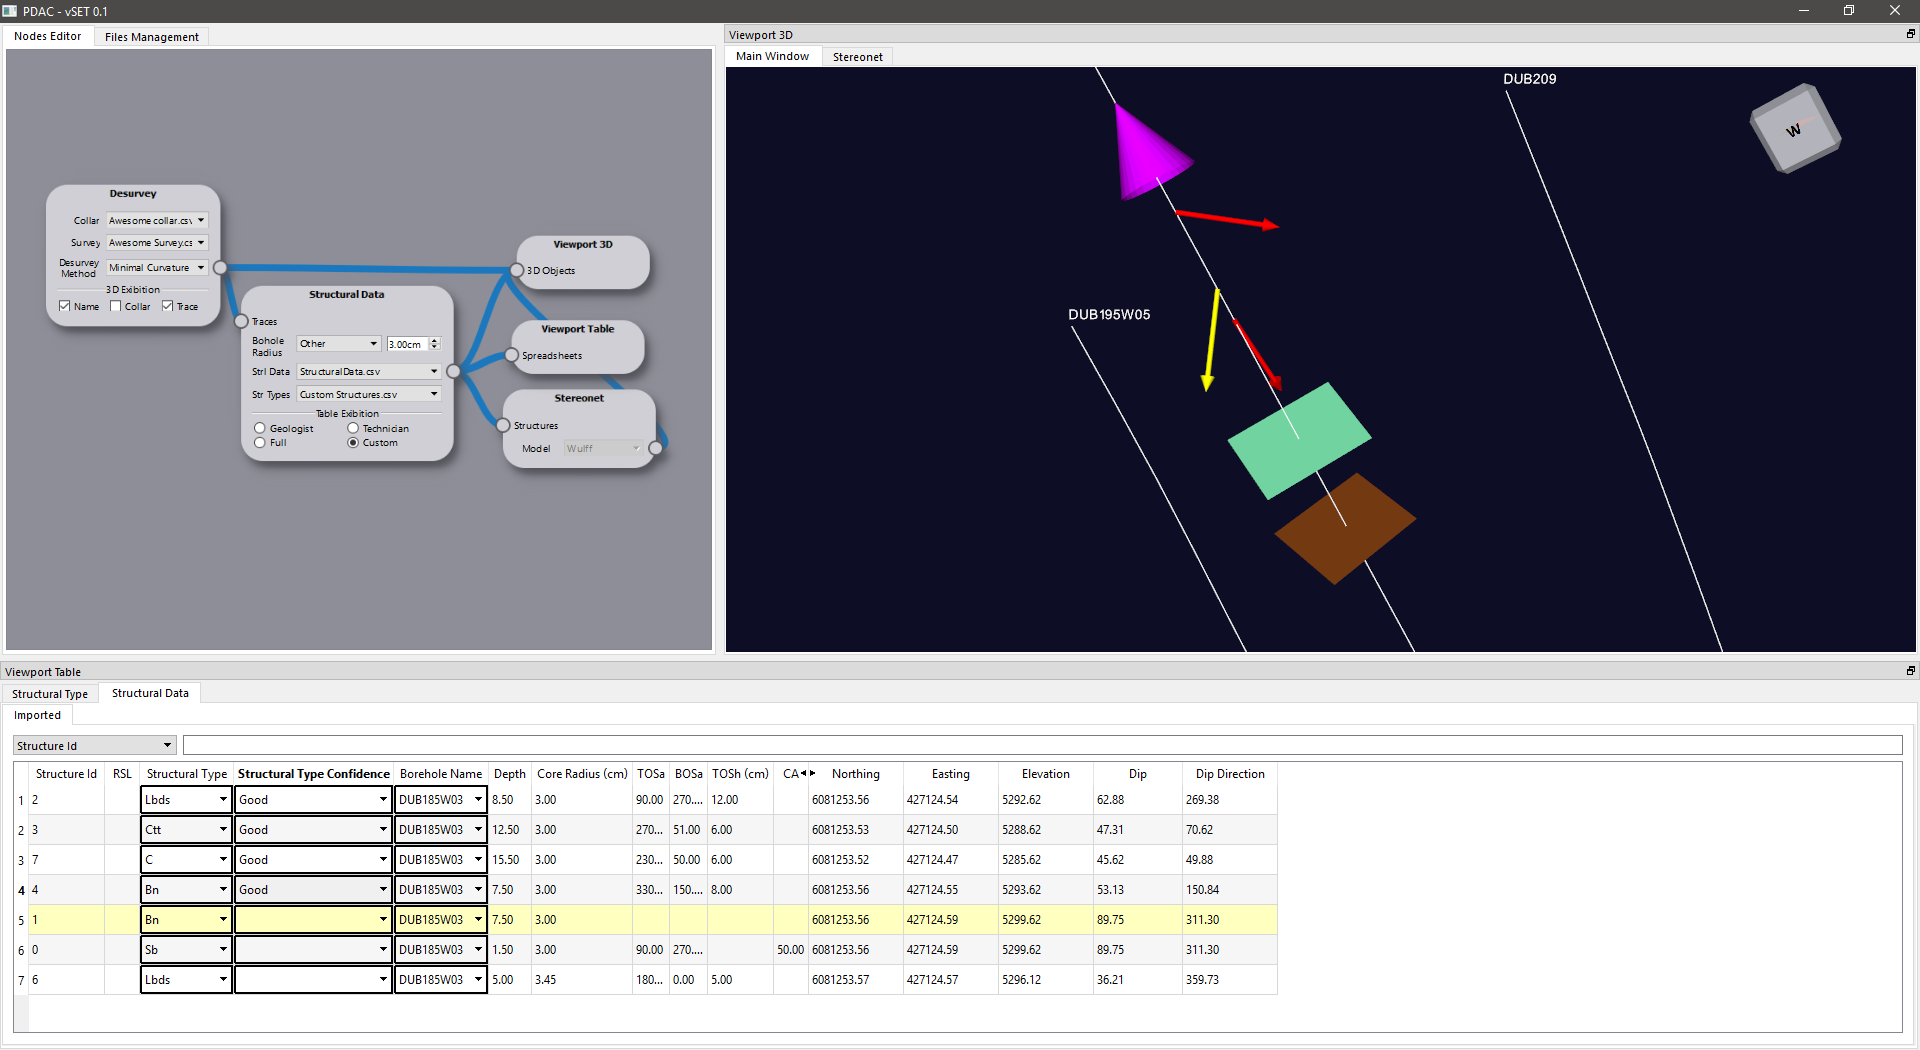 vSET - An Ore.node™ module for structural logging developed to facilitate and improve the collection of structural data in oriented core.Exceptional at handling linear and kinematic features,this software also easily captures fold asymmetries, facing and shear sense. Its simplicity allows even recent graduates and technicians to collect complex structural features like a pro. vSET™ is based on a new geometrical reading method developed by Rogerio Monteiro in 2001, and is the best practices in major companies worldwide. It significantly improves the acquisition of structural data, particularly lineations' measurement -a key factor for the understanding of the geometry of orebodies.This software module includes a nodes editor (control center), a spreadsheet (data enter), a 3D viewport (boreholes and structural data visualization) and a   Stereonet viewport. These are all integrated and the collected data is updated in all views simultaneously. The              Normal  0          false  false  false    EN-US  JA  X-NONE                                                                                                                                                                                                                                                                                                                                             /* Style Definitions */ table.MsoNormalTable {mso-style-name: